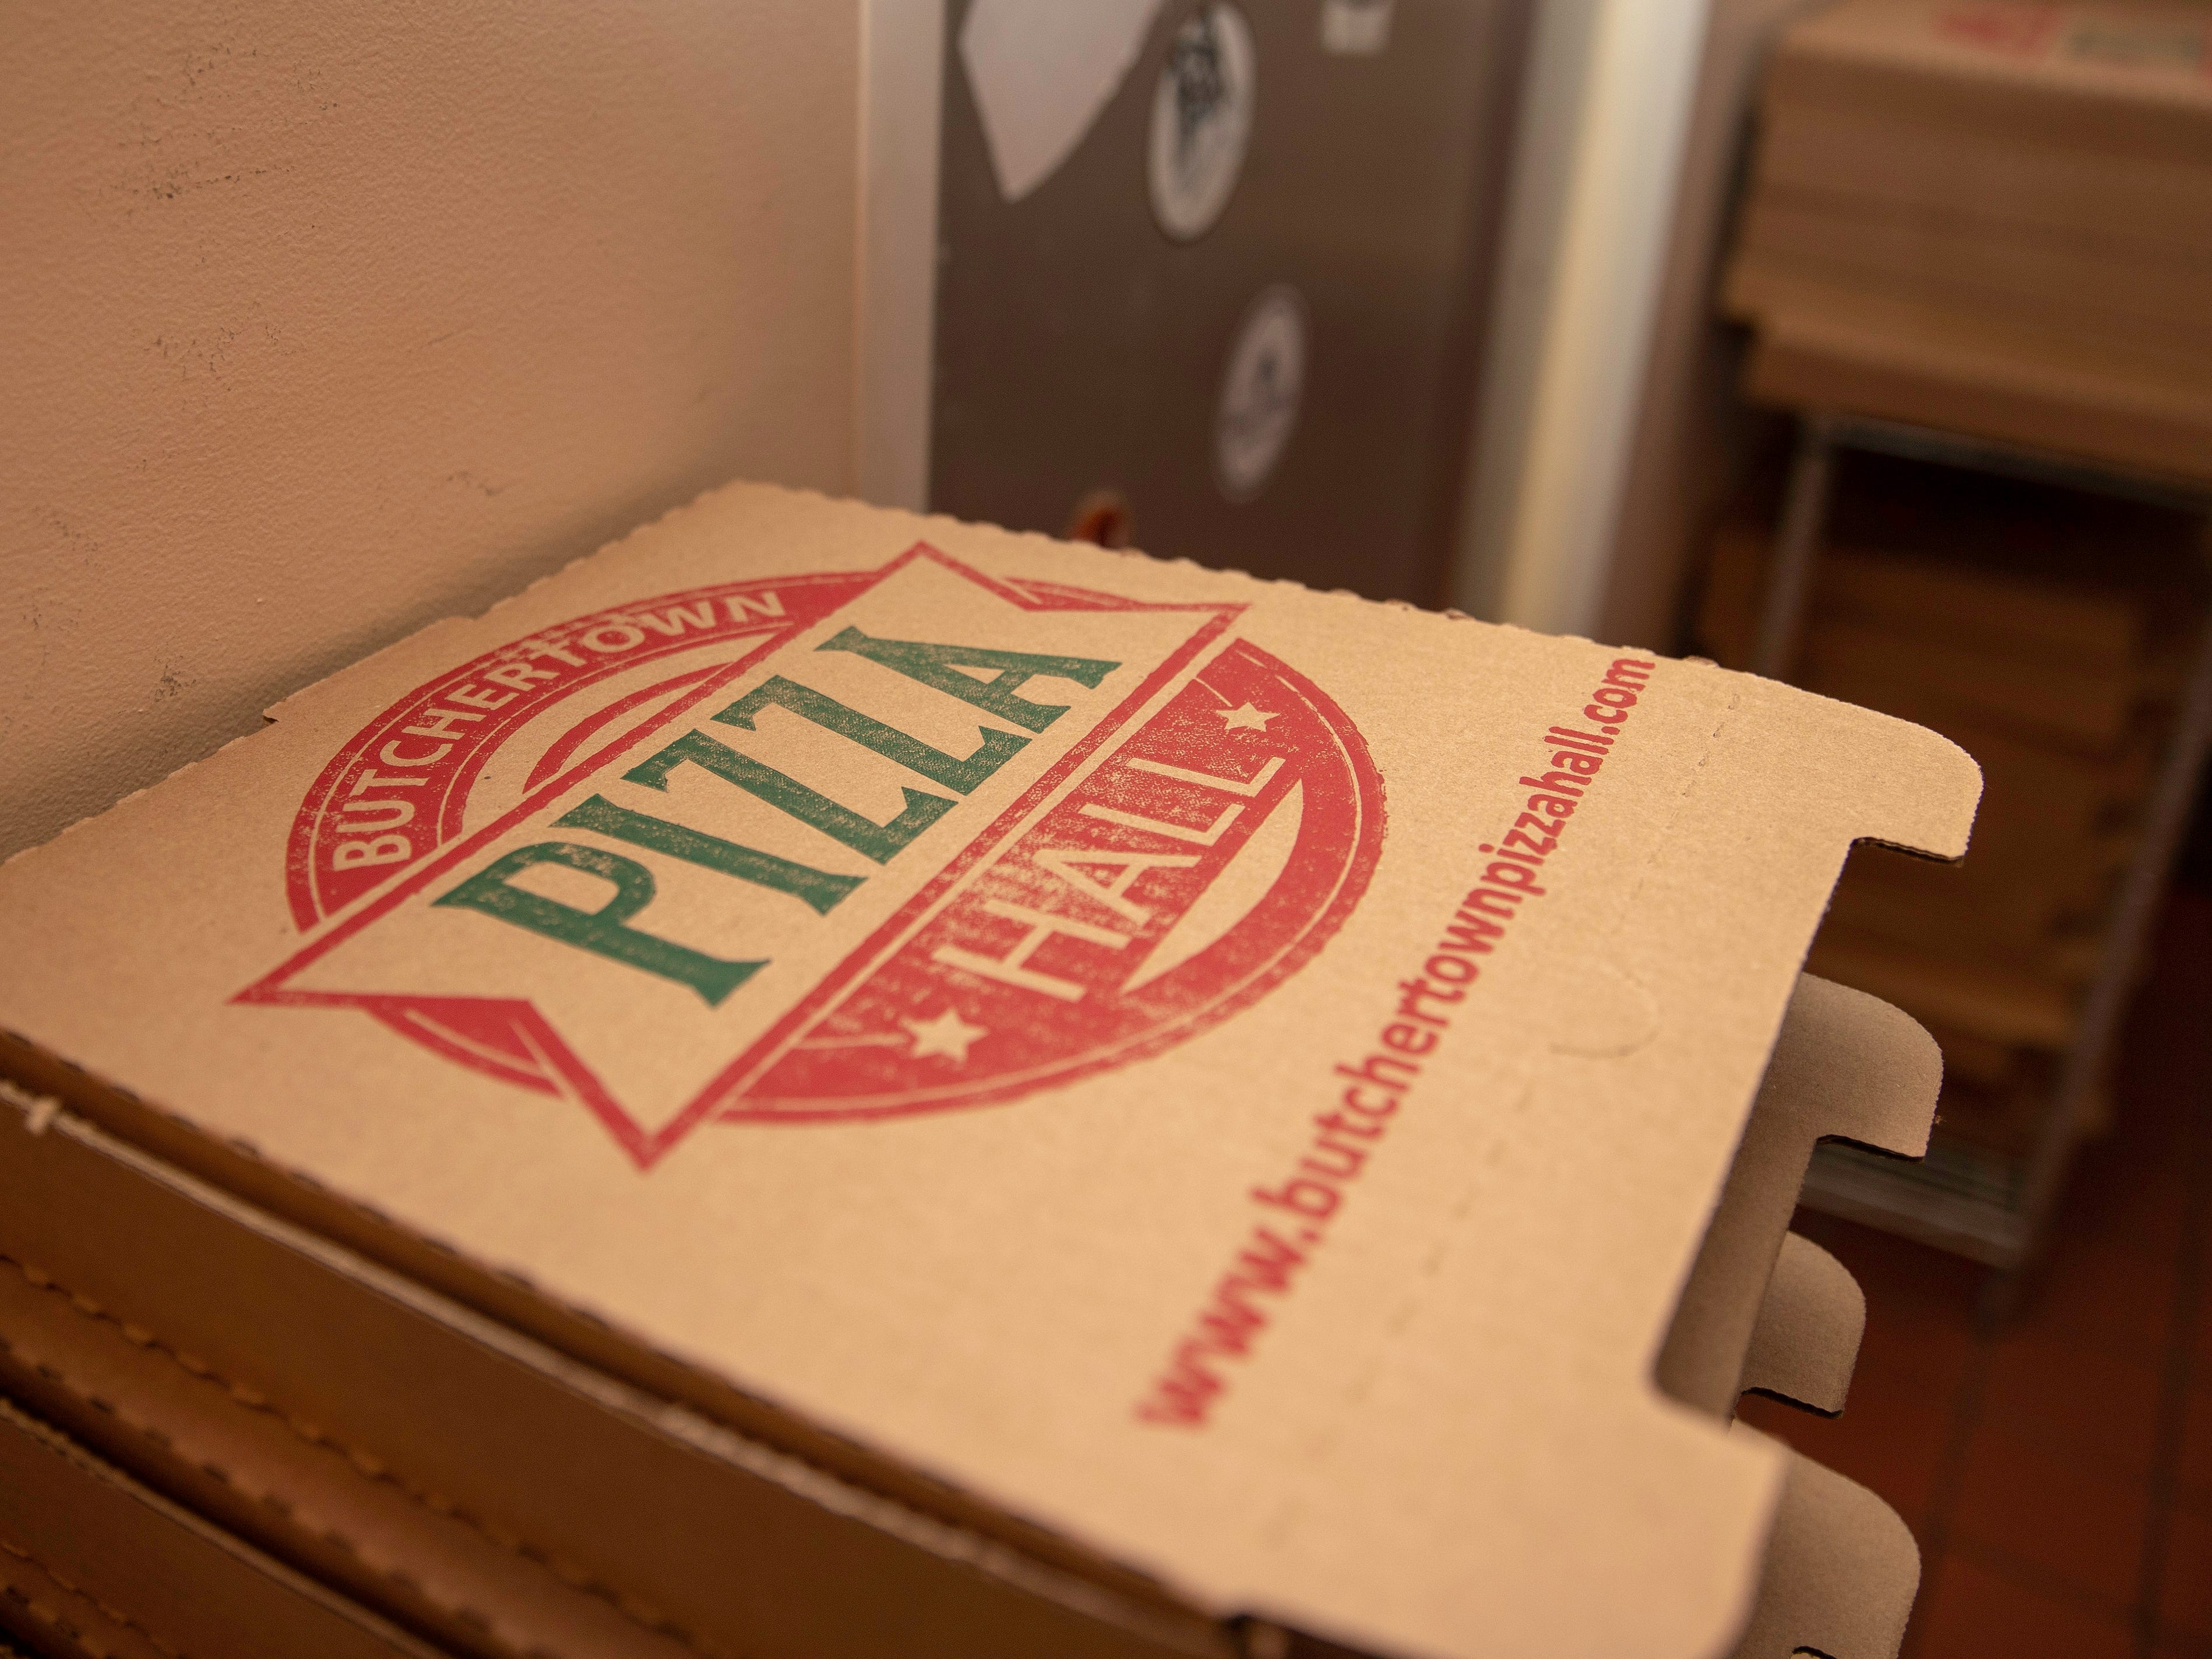 Pizza boxes stacked and ready for to-go pies or leftover slices at Buthertown Pizza Hall, Wednesday, Nov. 7, 2018 in Louisville Ky.